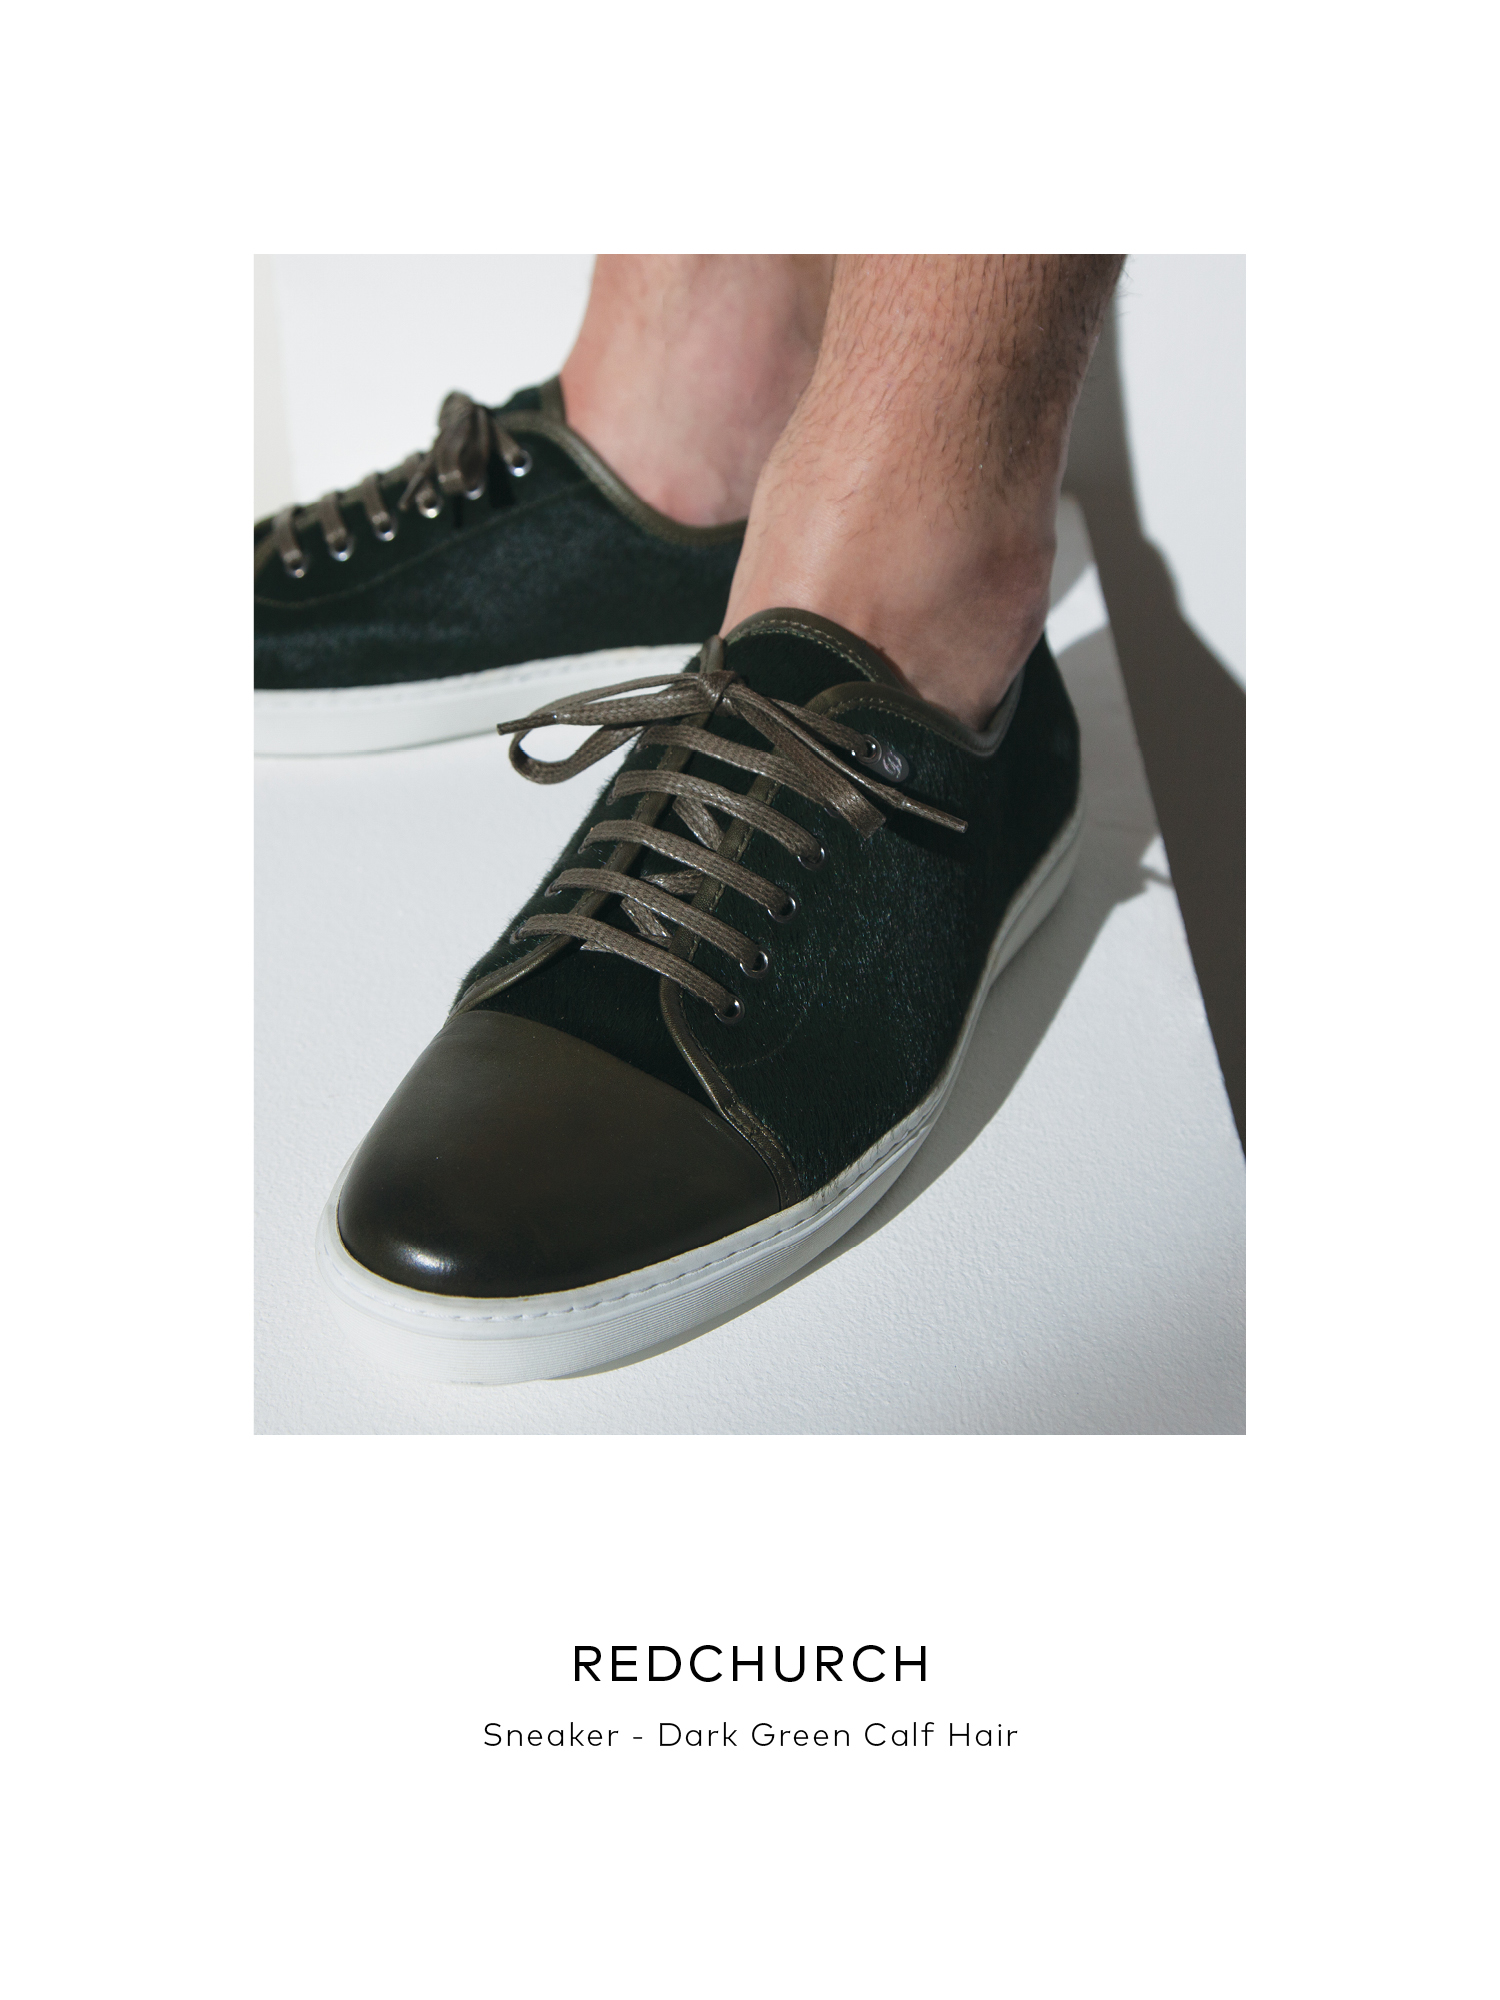 Redchurch - Dark Green Calf Hair